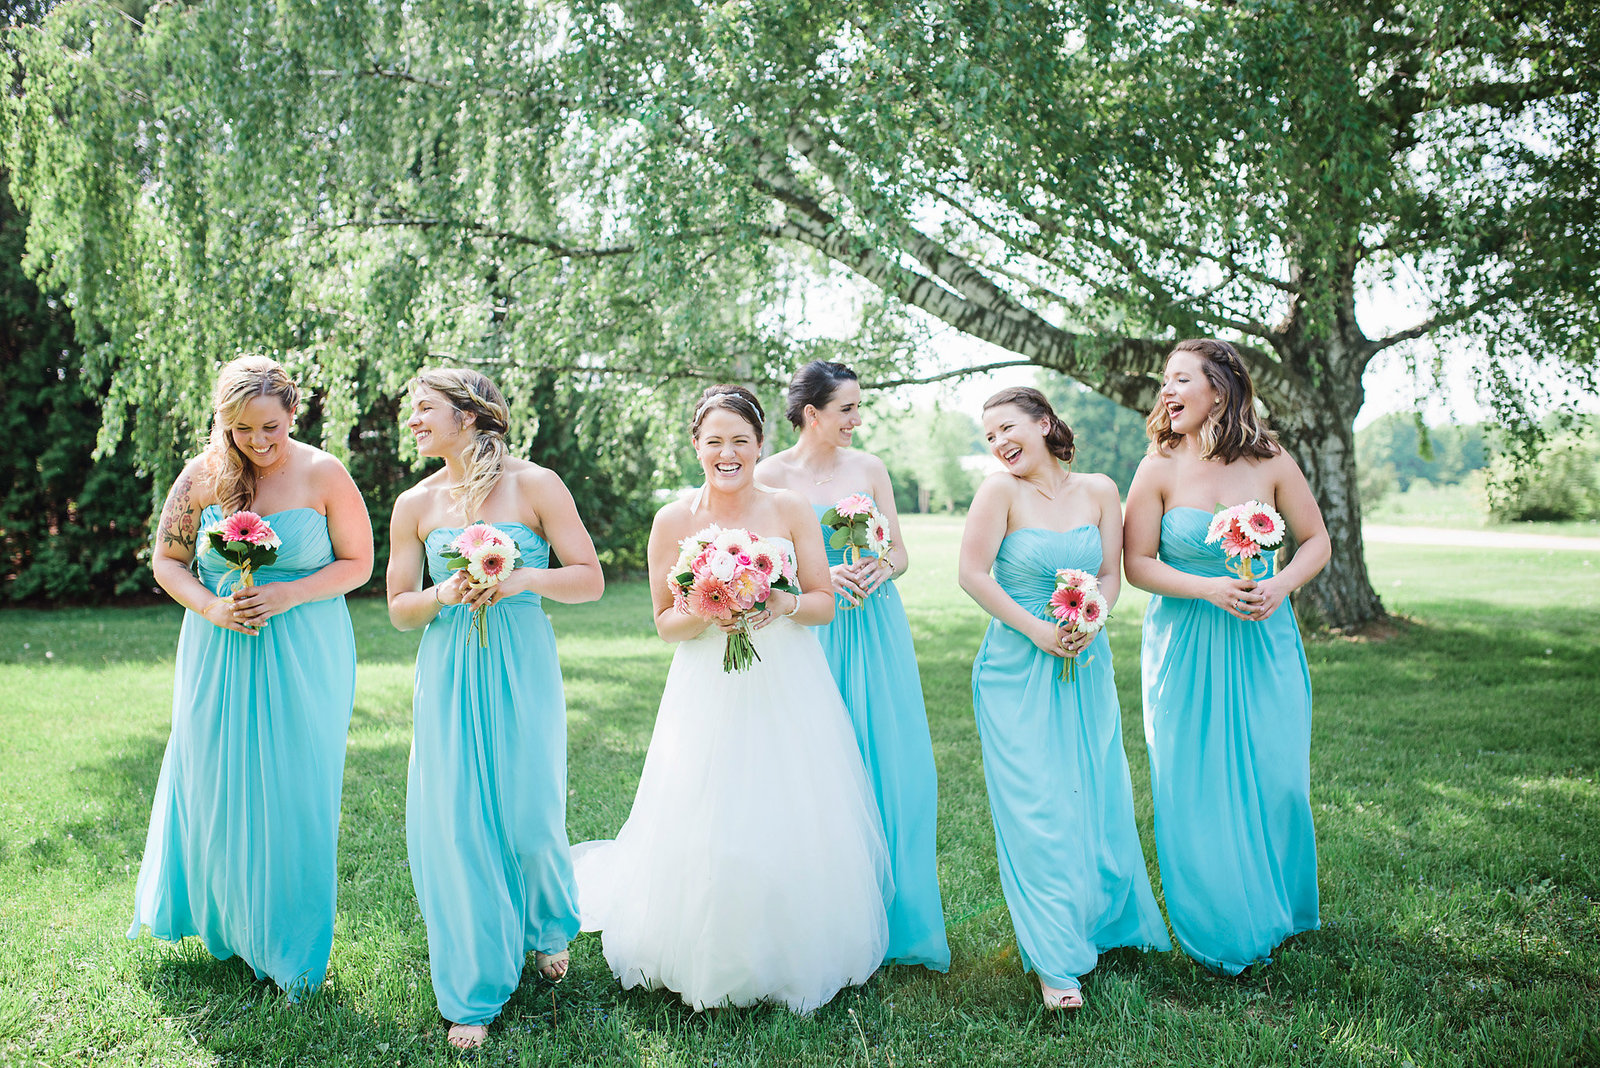 bridesmaids in turquoise, pink bouquets Vermont weddings